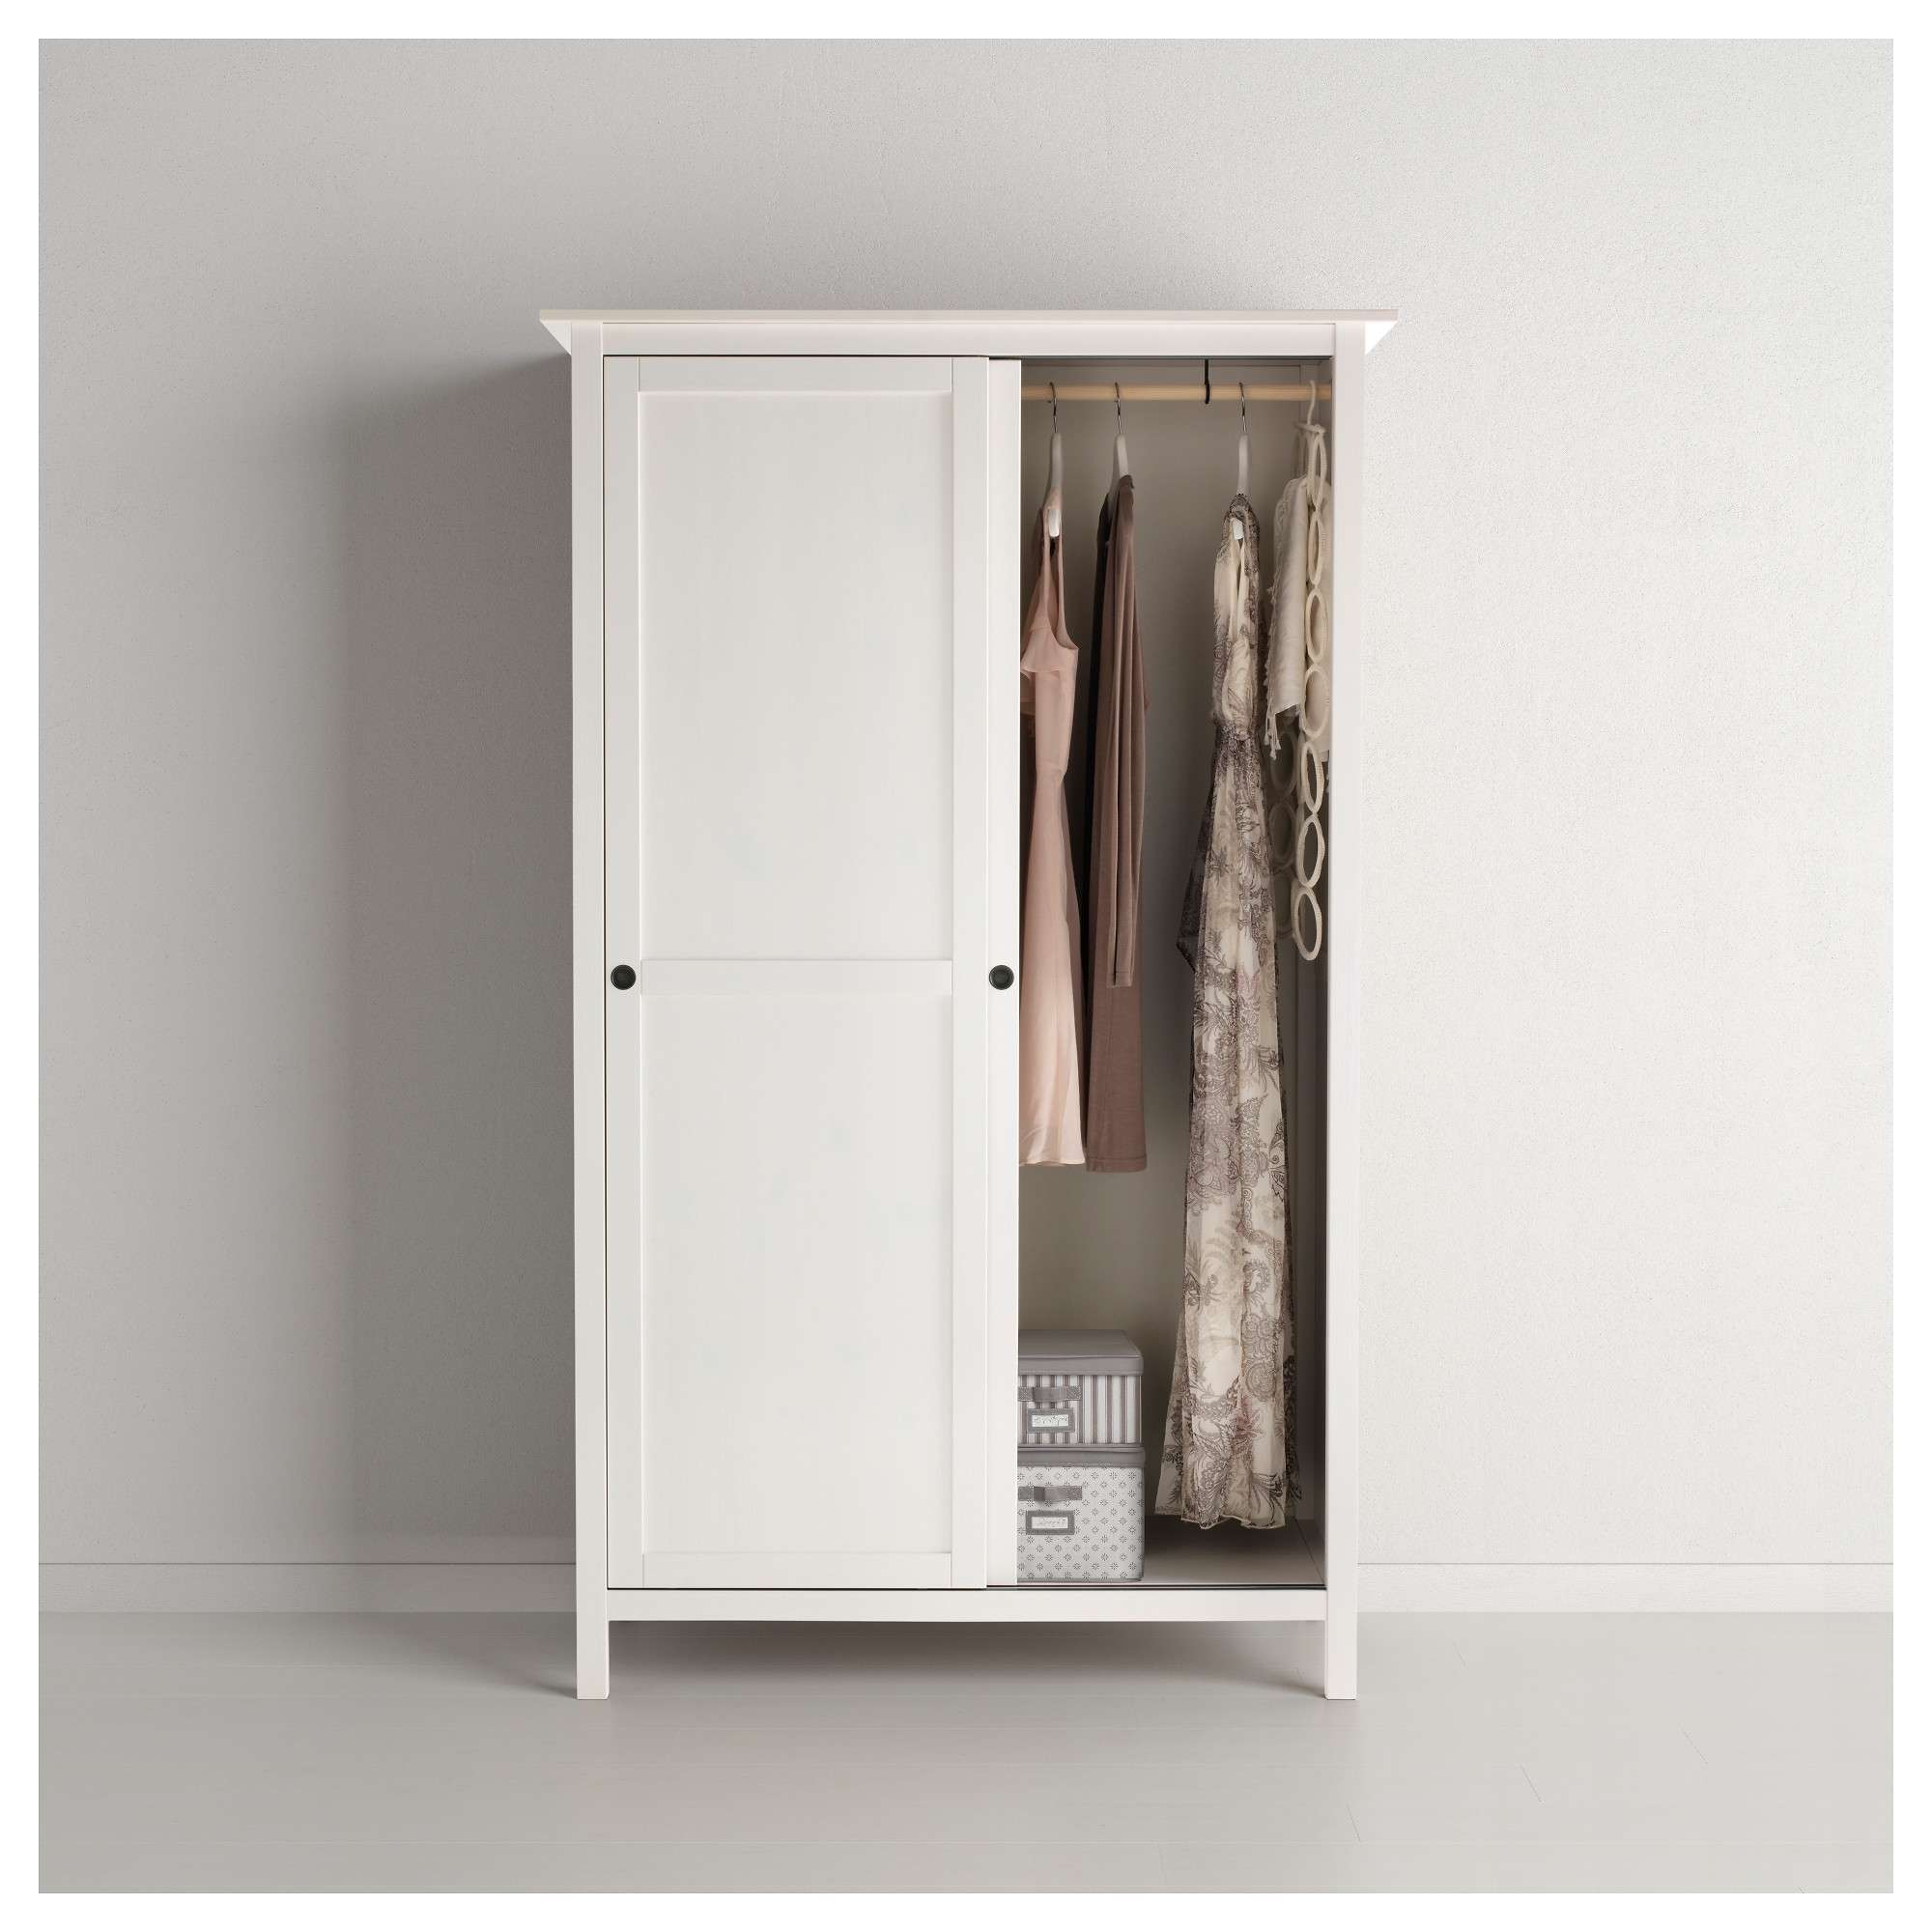 Hemnes Wardrobe With 2 Sliding Doors White Stain 120X197 Cm – Ikea For Best And Newest Wardrobes With 2 Sliding Doors (View 3 of 15)